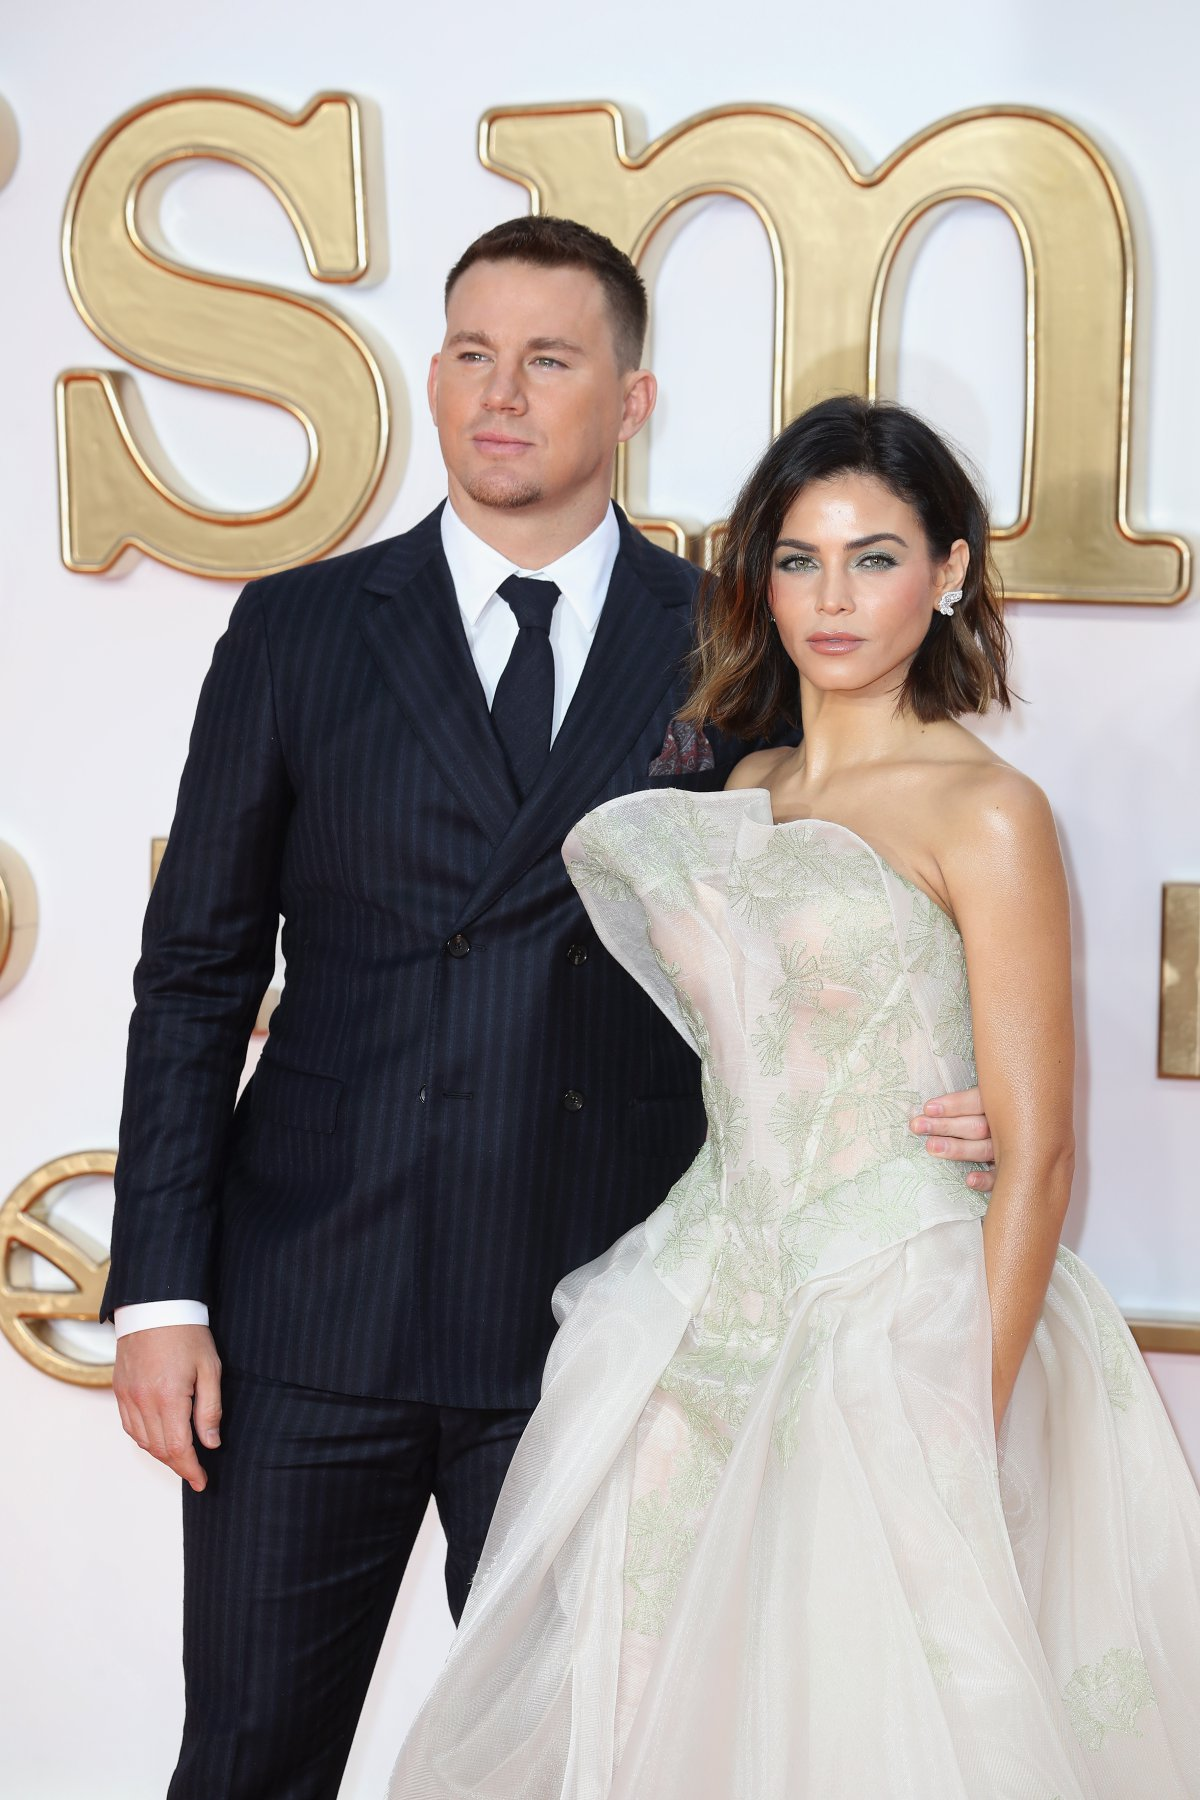 La ruptura de Hollywood: Channing Tatum y Jenna Dewan